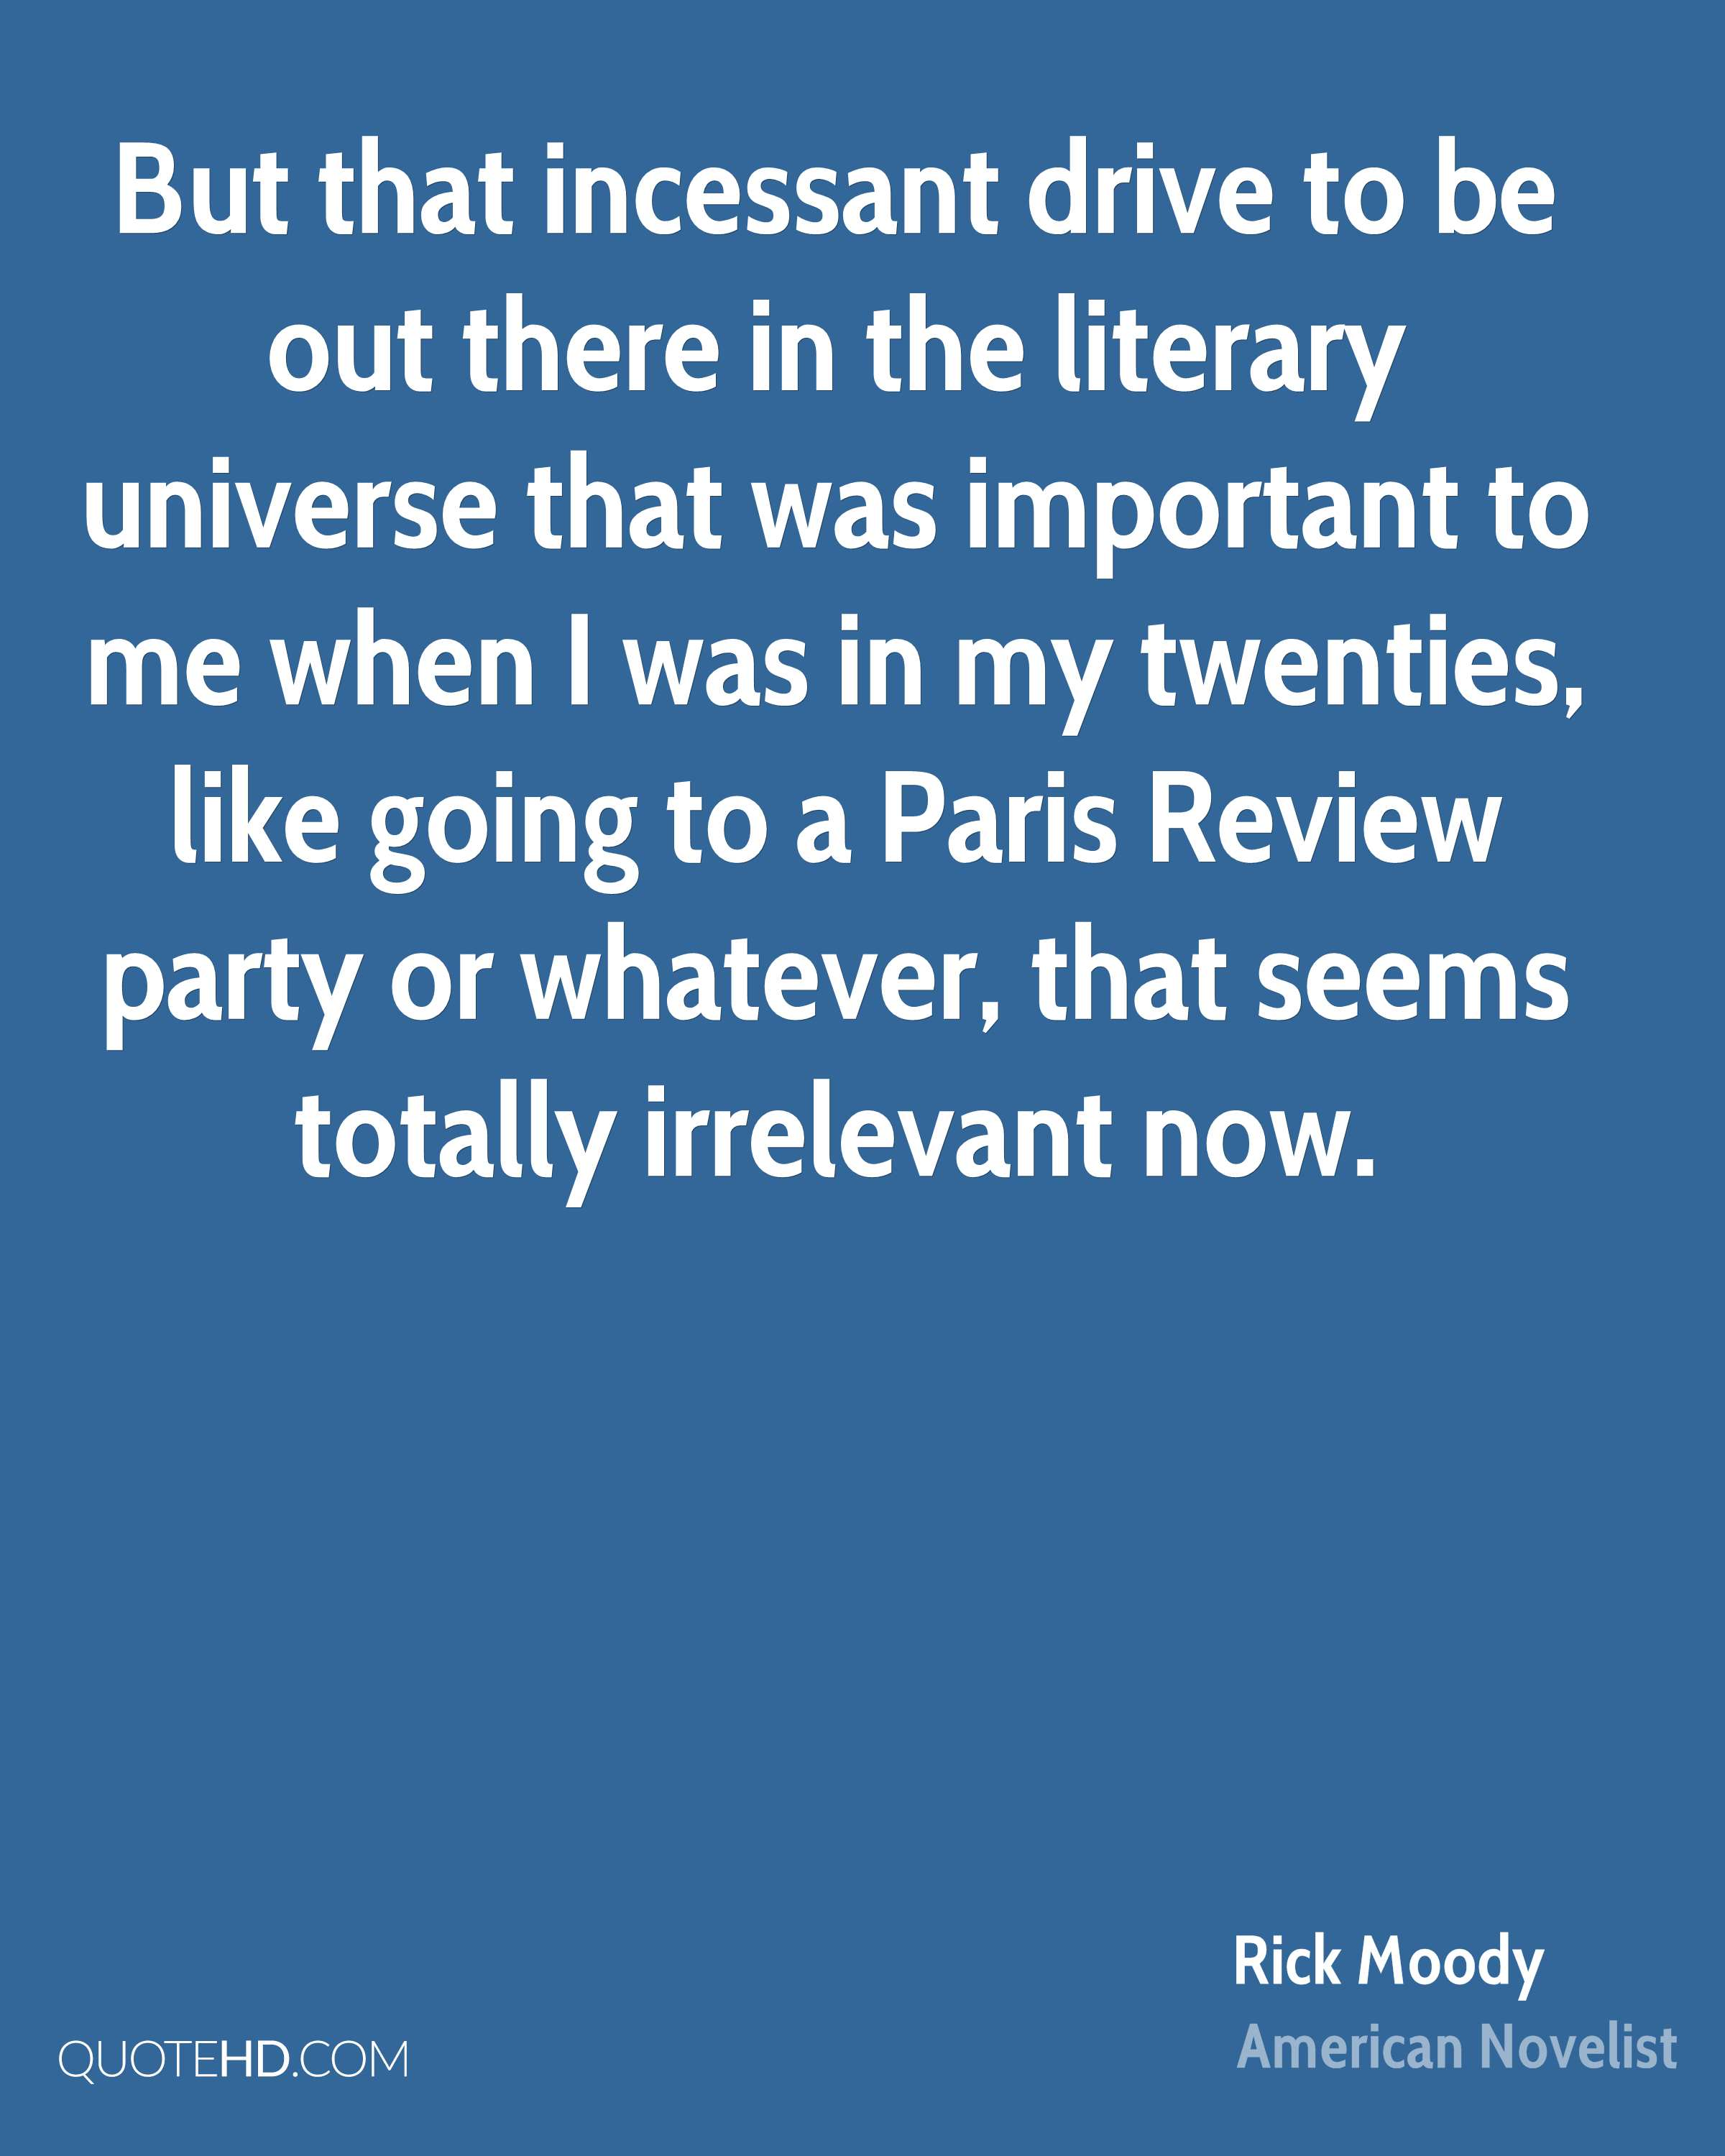 But that incessant drive to be out there in the literary universe that was important to me when I was in my twenties, like going to a Paris Review party or whatever, that seems totally irrelevant now.